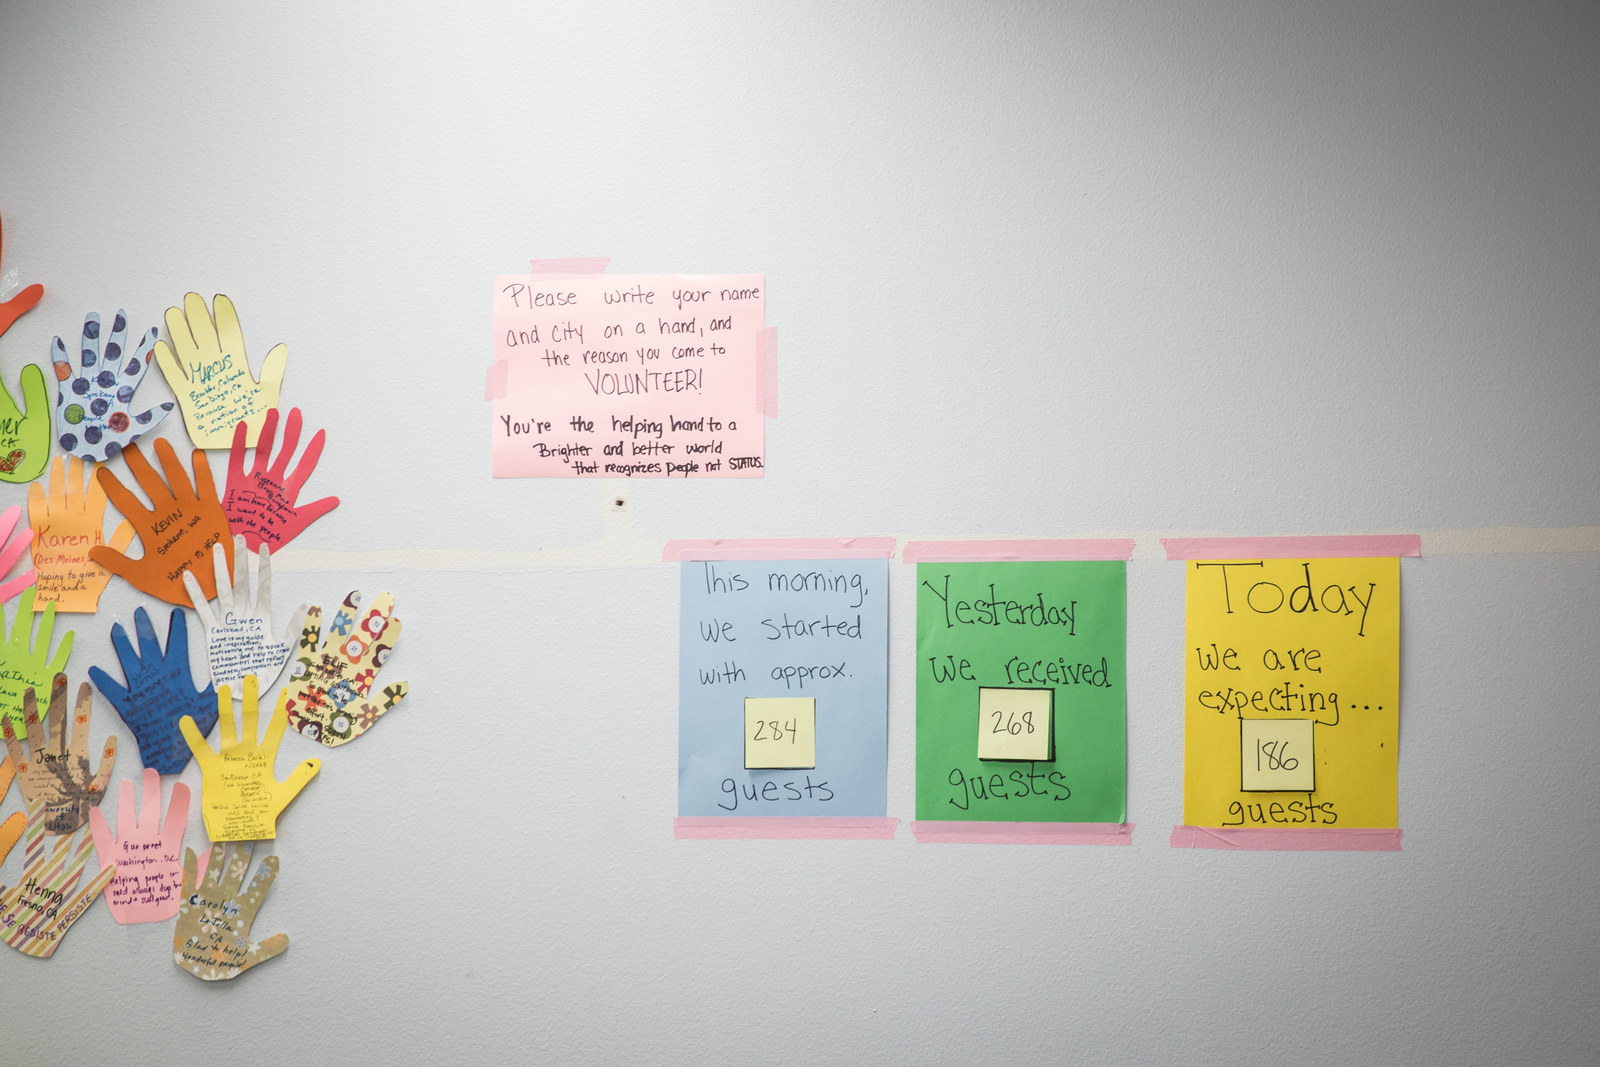 A wall at the local Rapid Response shelter, which has seen an increase in guests generally and will have to house more people following the closure of the Christ Ministry Center.